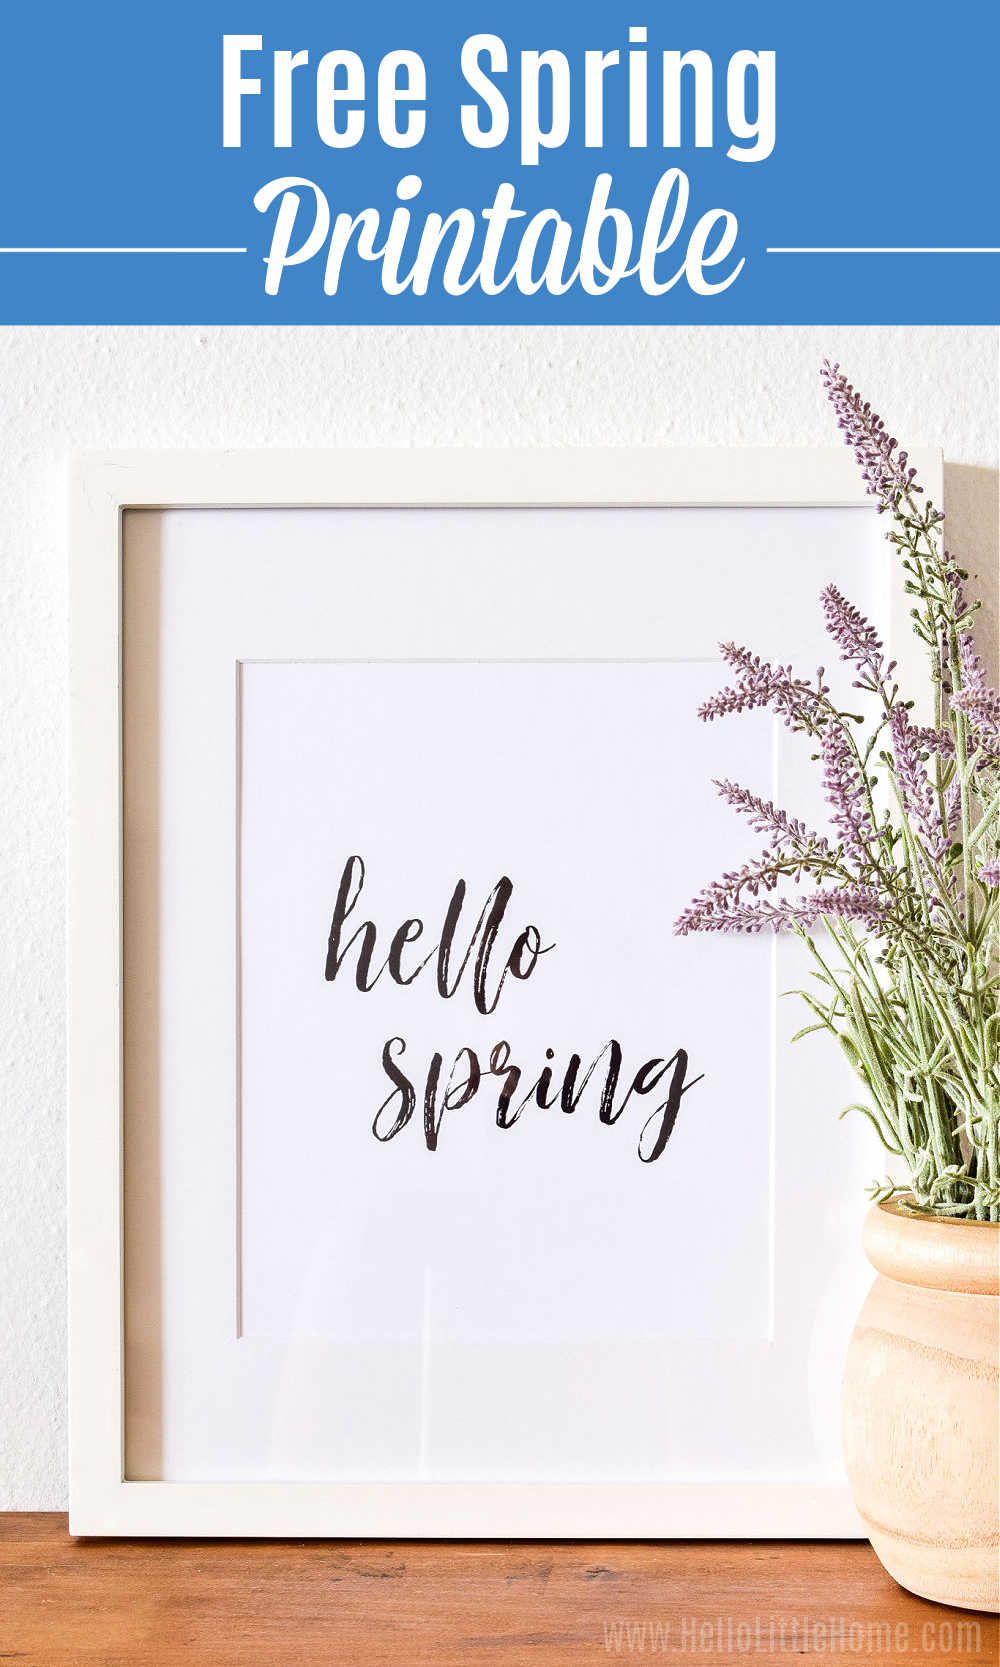 The Hello Spring print in a white frame and a lavender plant on a wood table.